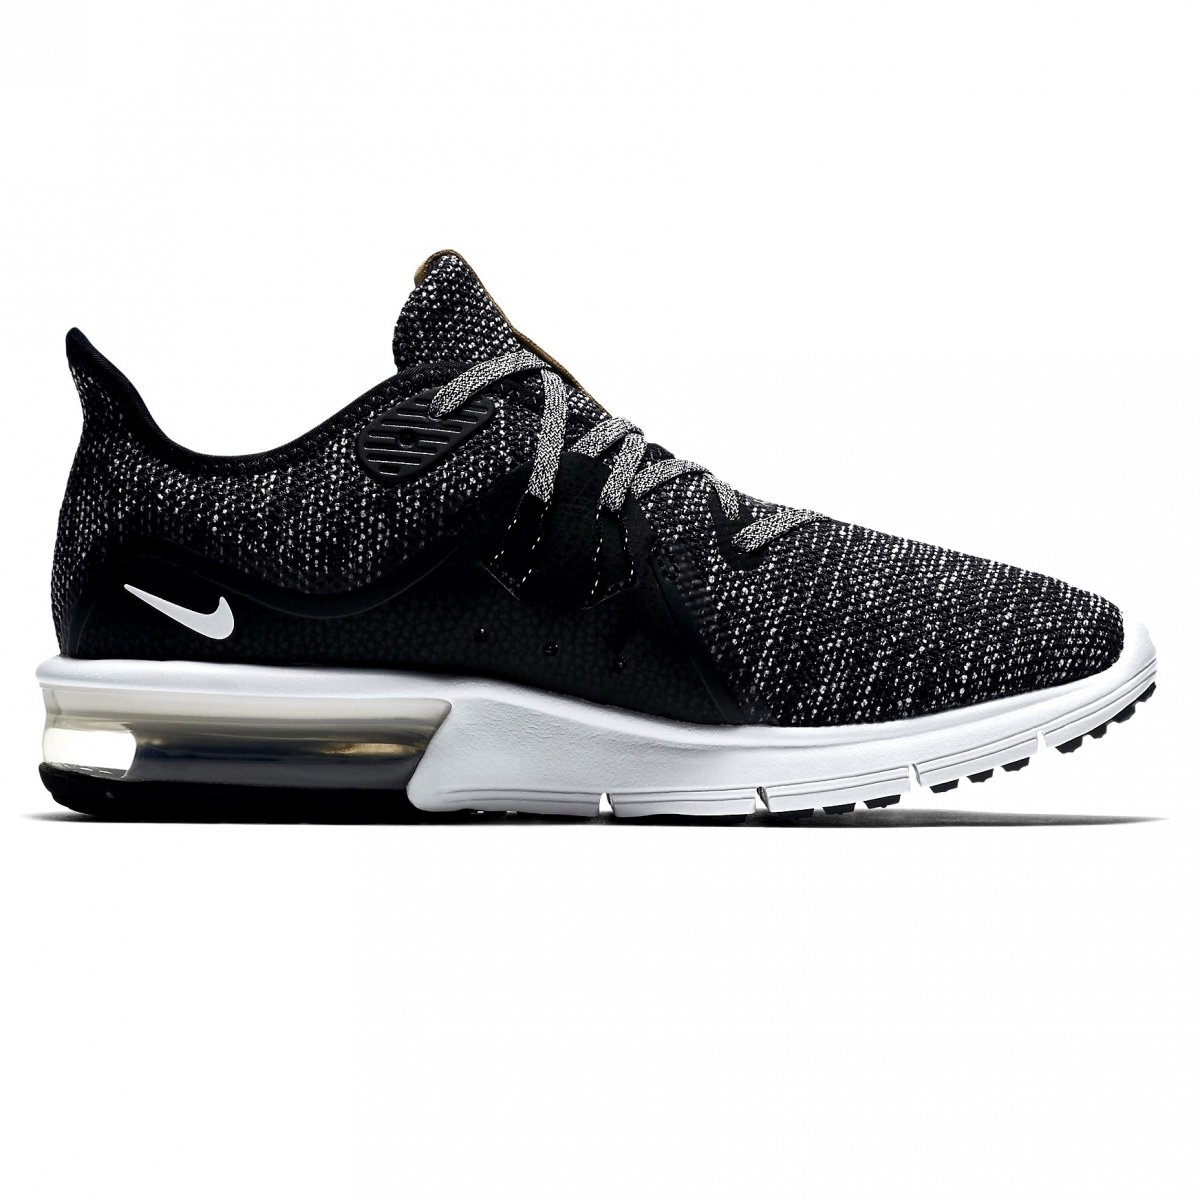 Tênis Nike Air Max Sequent 3 Feminino